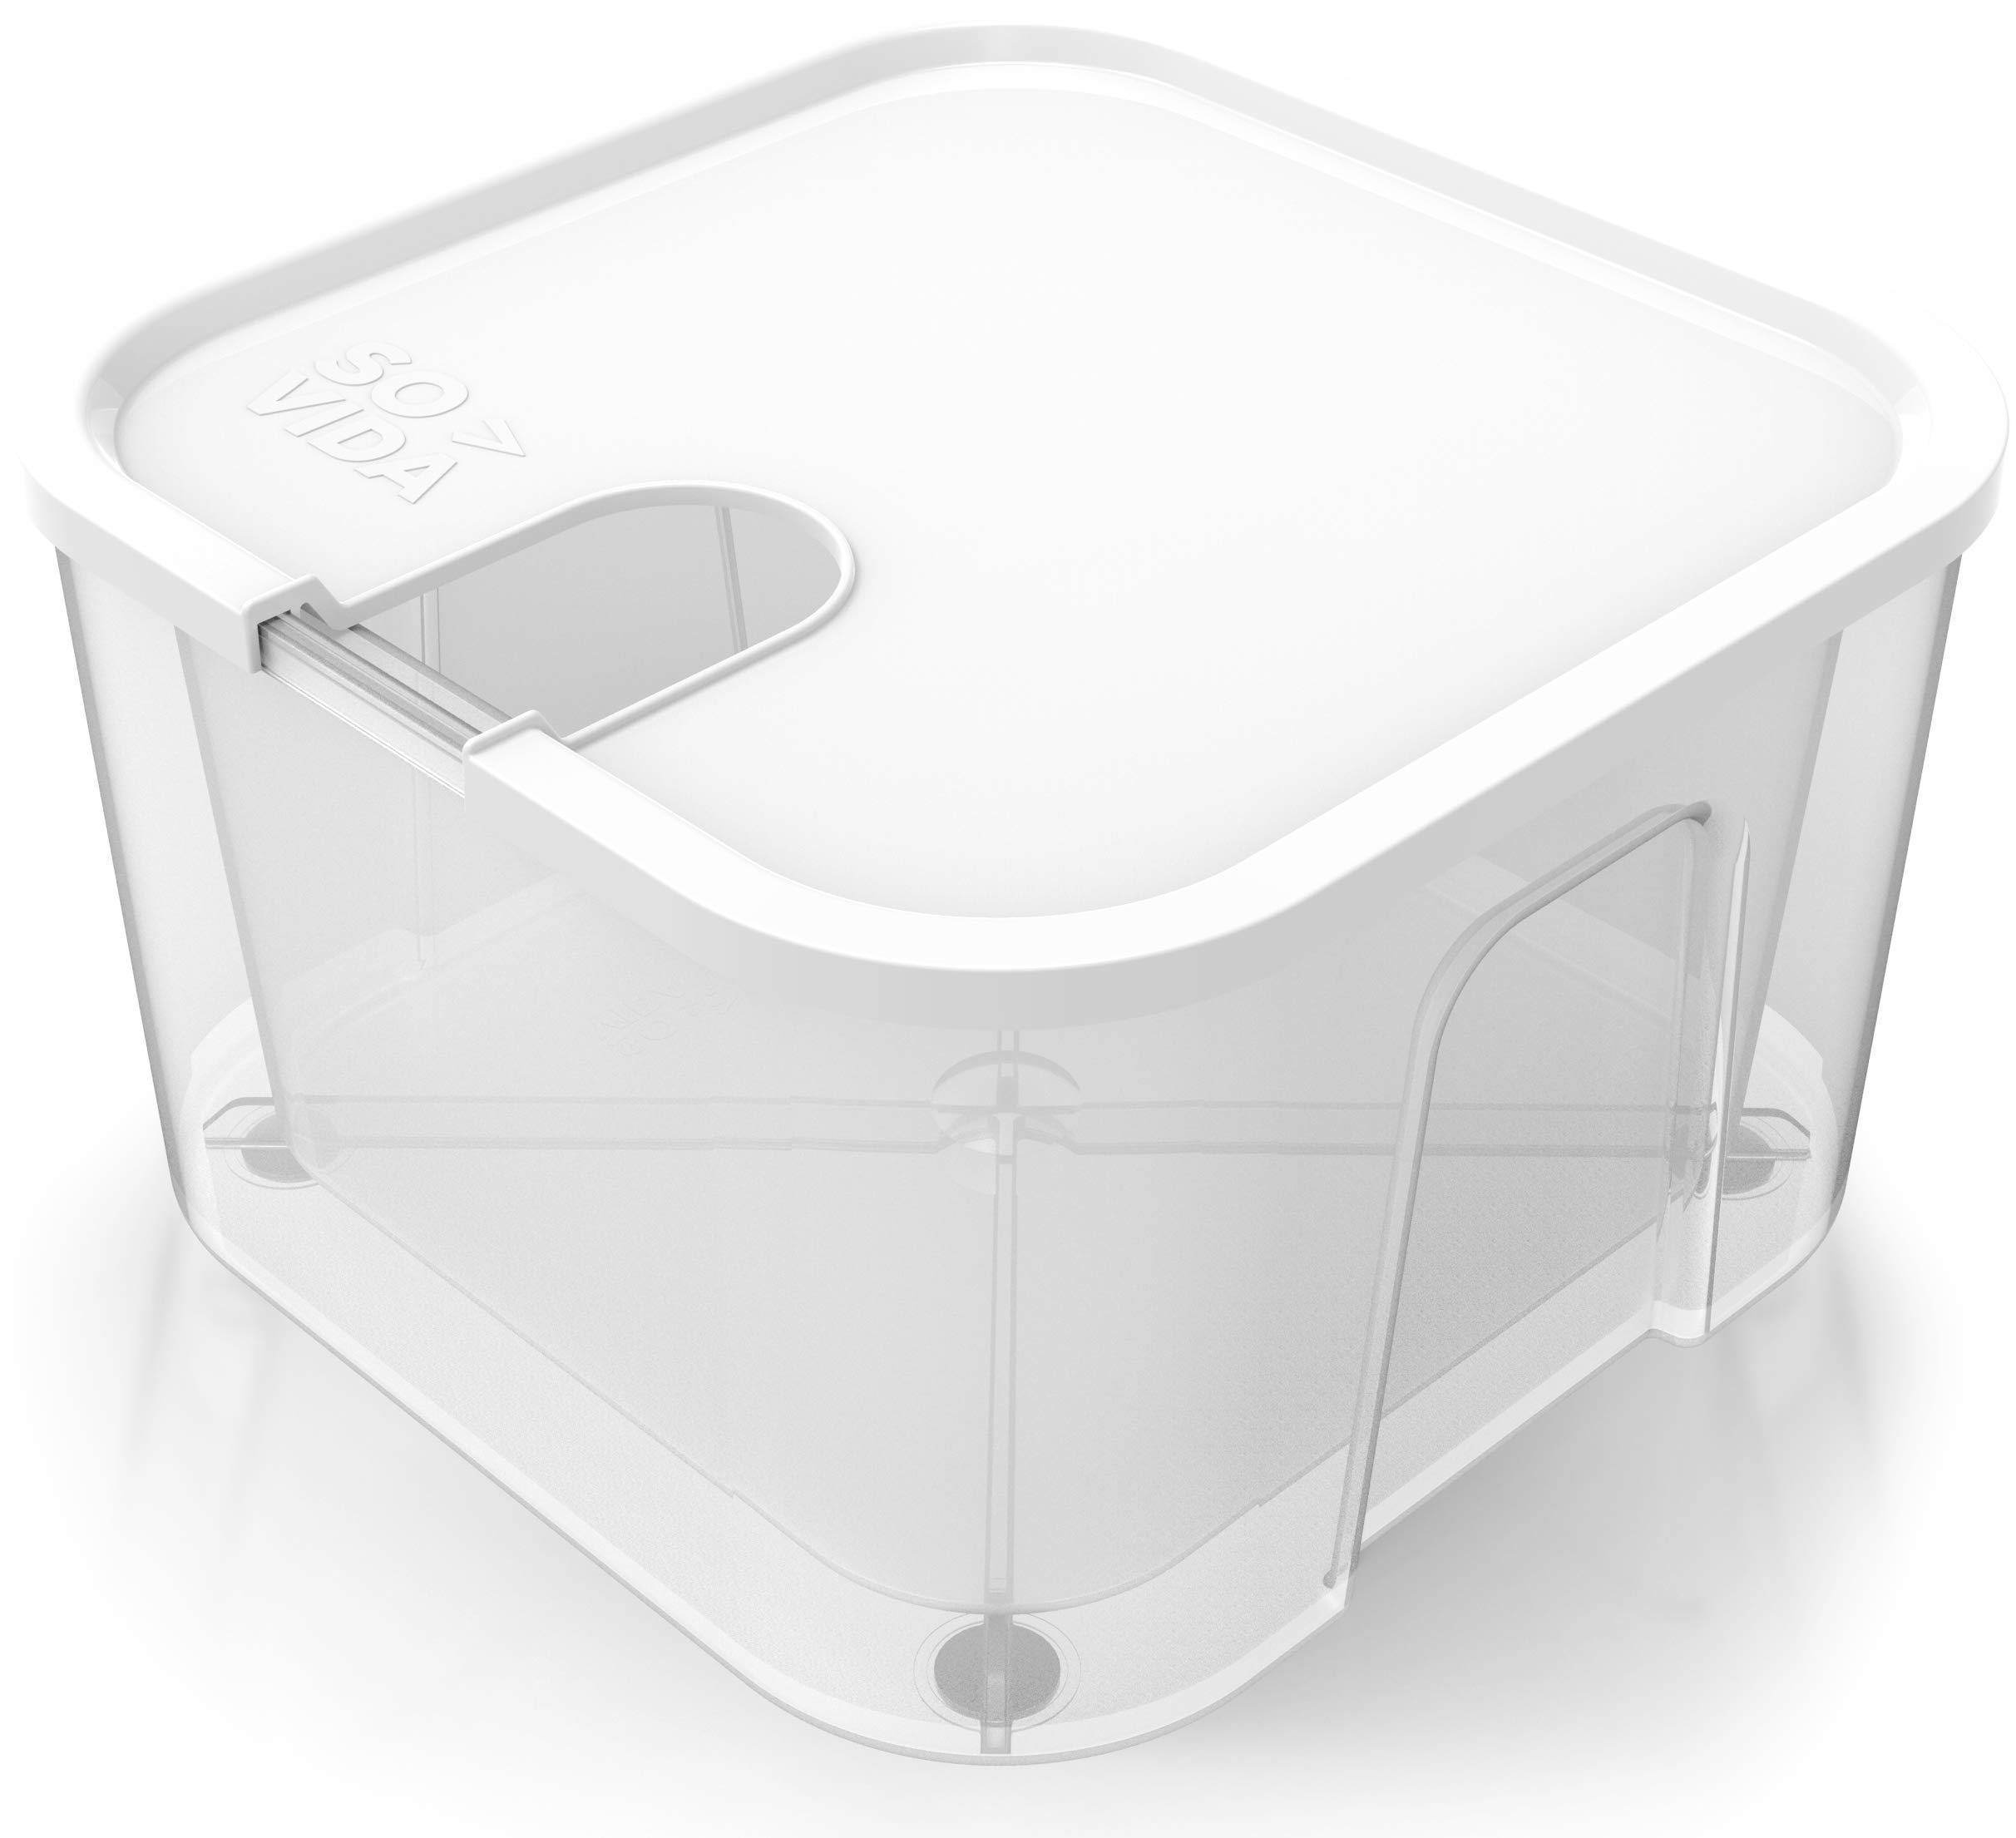 SO-VIDA Sous Vide Container For Anova Precision Cooker (not Anova Nano) - 12QT Double Walled For Extra Insulation - Raised Feet Provide Superior Work Surface Protection - Lid Included For Anova